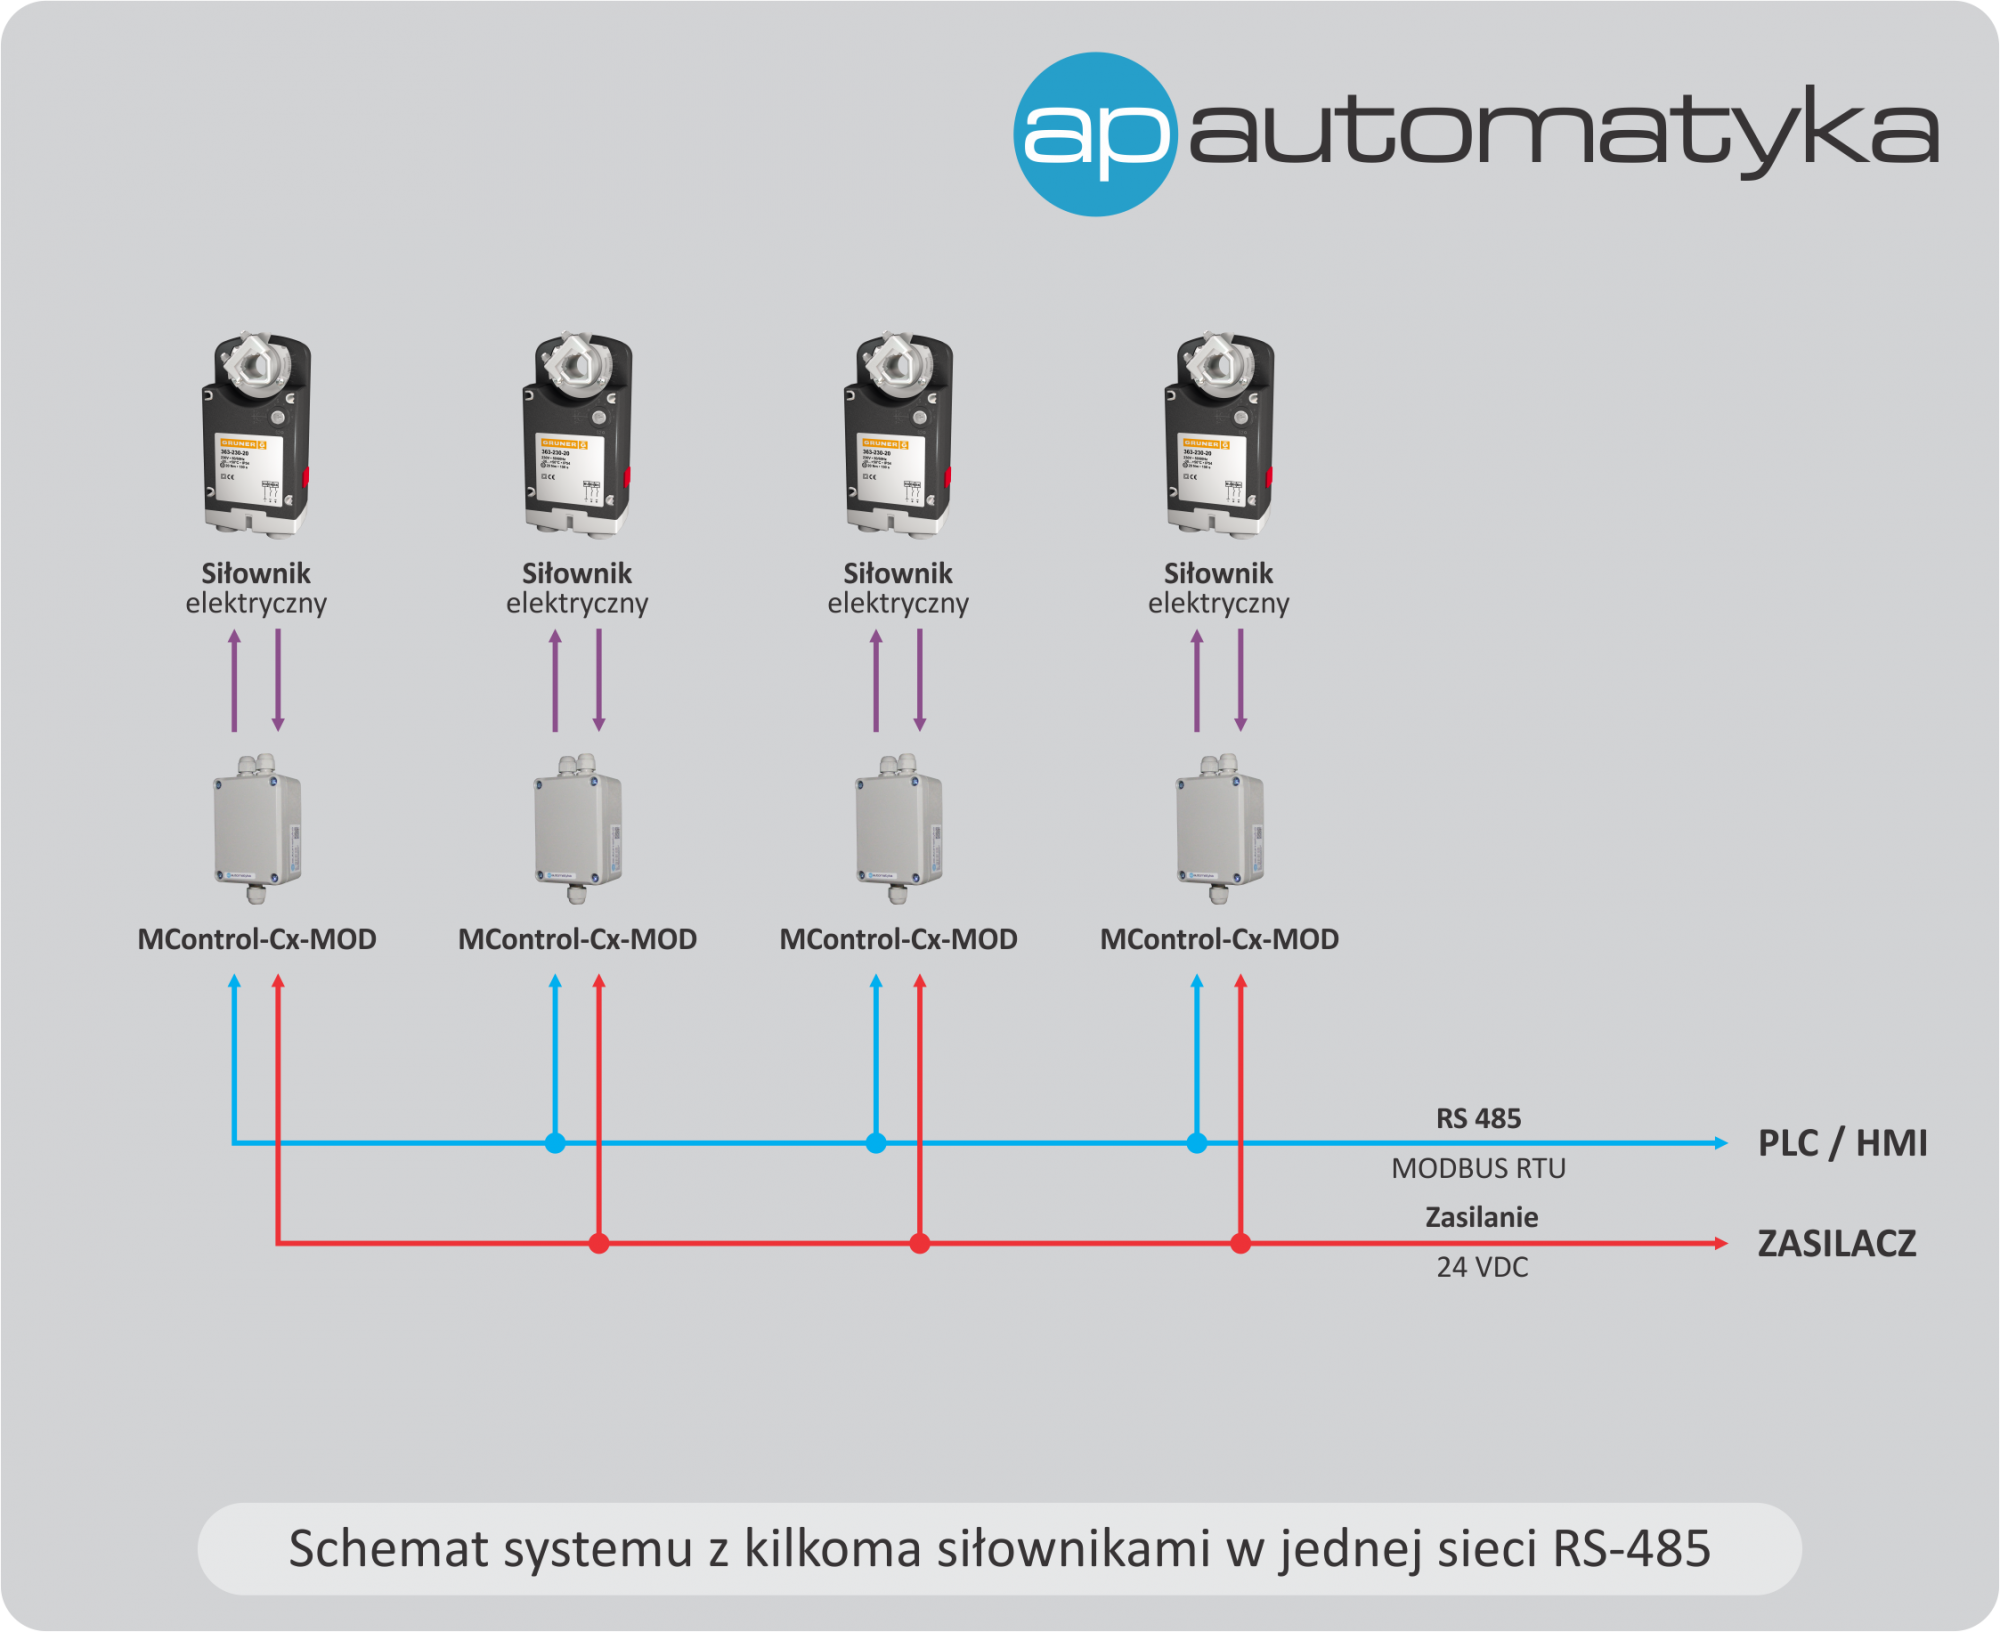 Home Automation Software further Mcontrol Led Customicon1 thumb in addition Mcontrol C Zadajnik Pozycji Z Rs 485 Silownikow Elektrycznych 1391 also Index php together with Best Plug N Power Home Automation Kits. on mcontrol